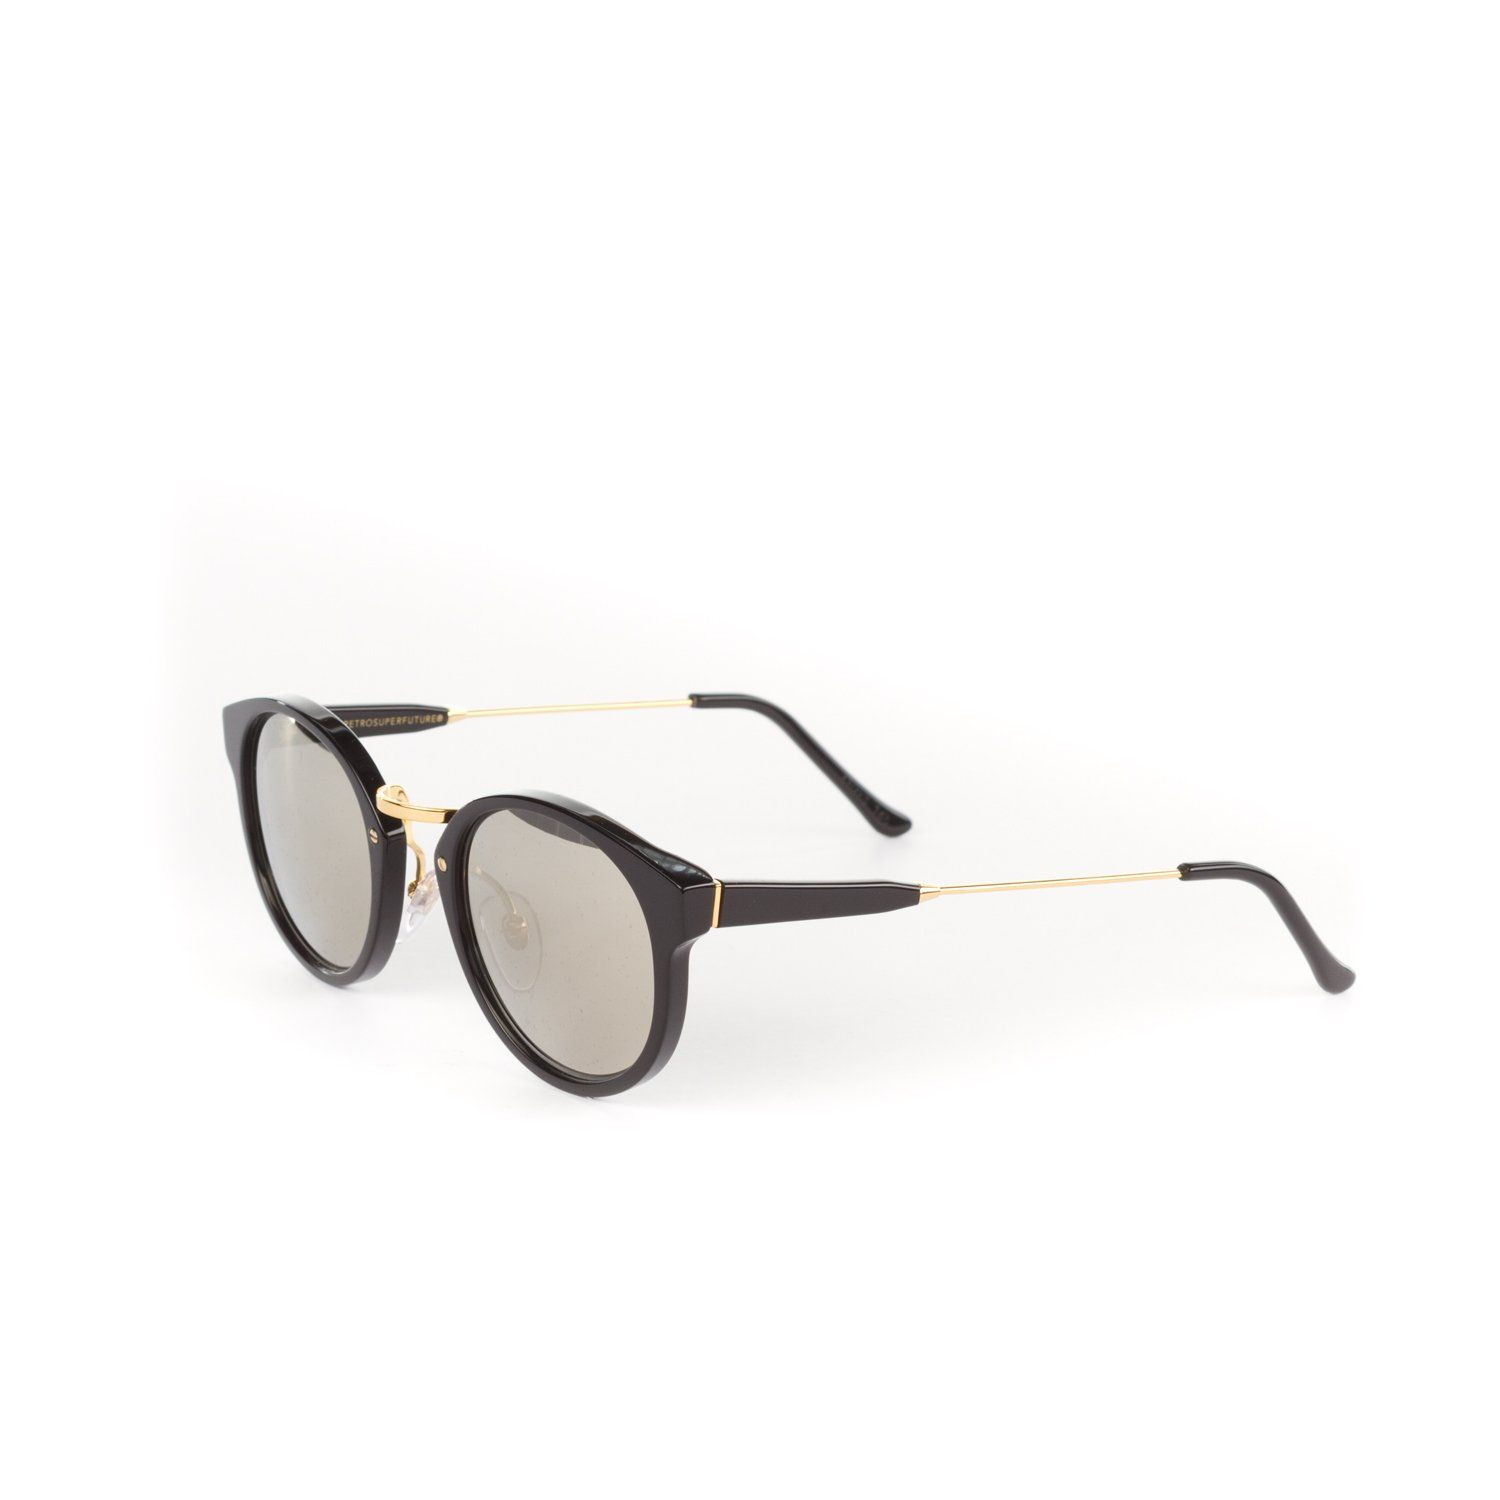 Retrosuperfuture Panama Black/Ivory Sunglasses SUPER-S20 47mm. 47x24x145 mm Gold finish metal arms and nose piece and accents Ivory Mirror Carl Zeiss lenses Microfiber cleaning cloth included Black, snap front case included Hand made in Italy.